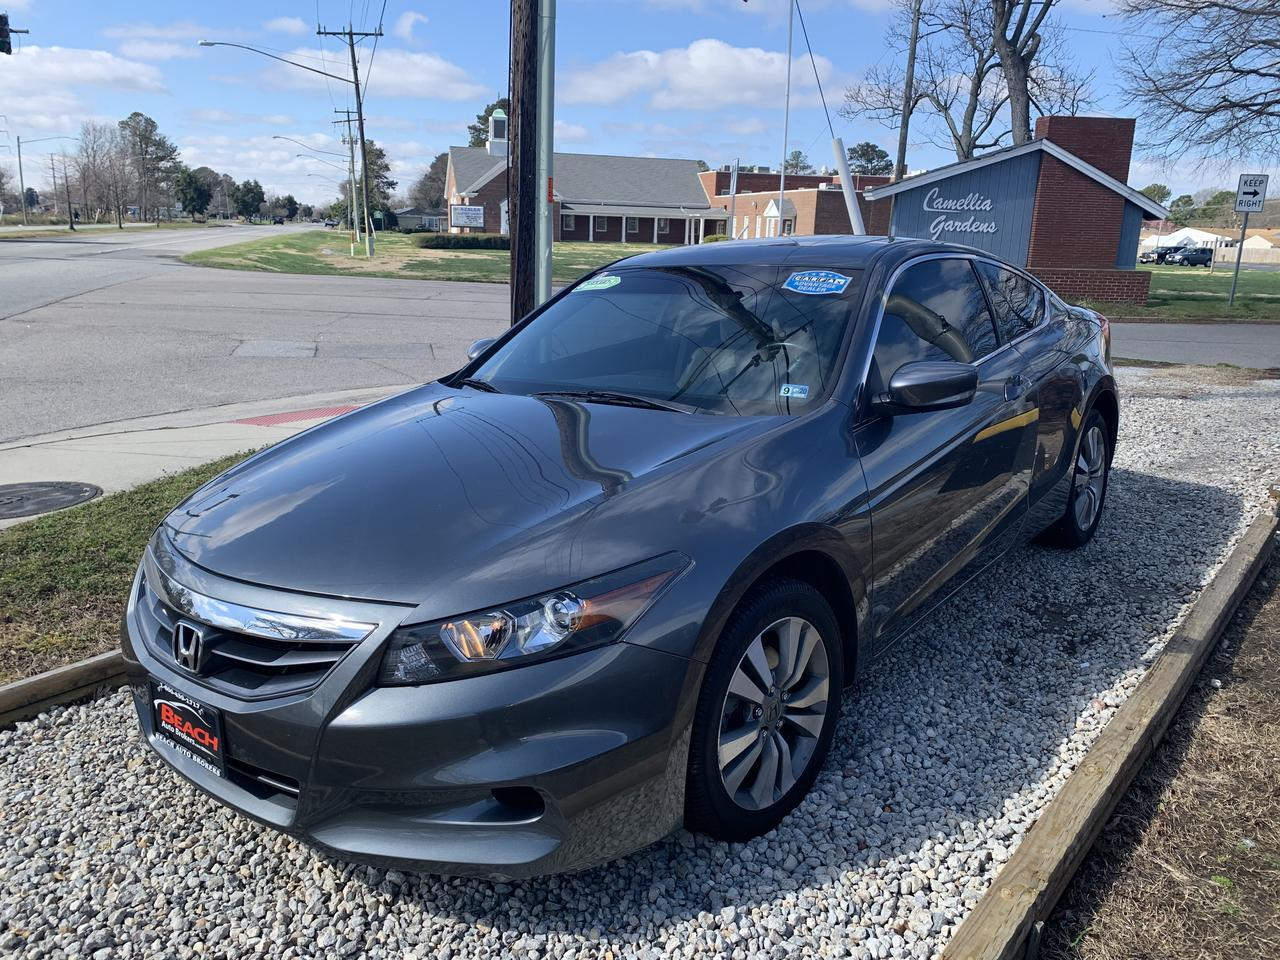 2012 HONDA ACCORD EX-L, WARRANTY, LEATHER, SUNROOF, HEATED SEATS, SATELLITE RADIO, AUX/USB PORT, LOW MILES! Norfolk VA